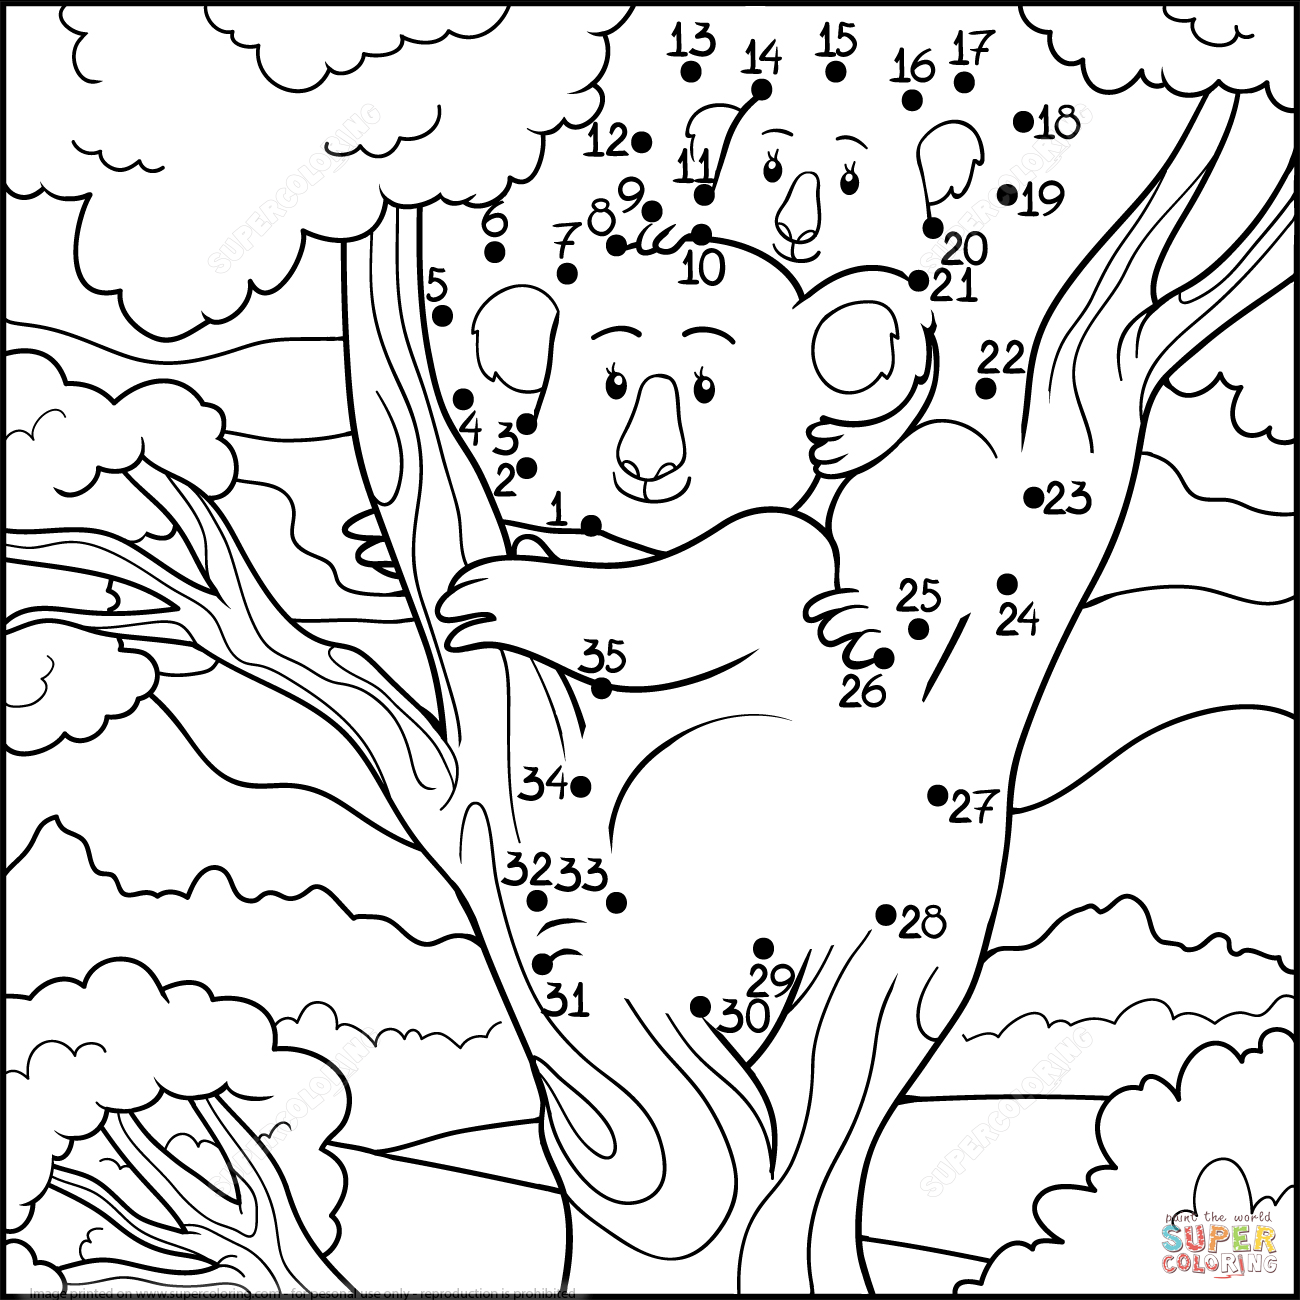 Koala Mom With Koala Baby Super Coloring Baby Coloring Pages Free Printable Coloring Pages Peacock Coloring Pages